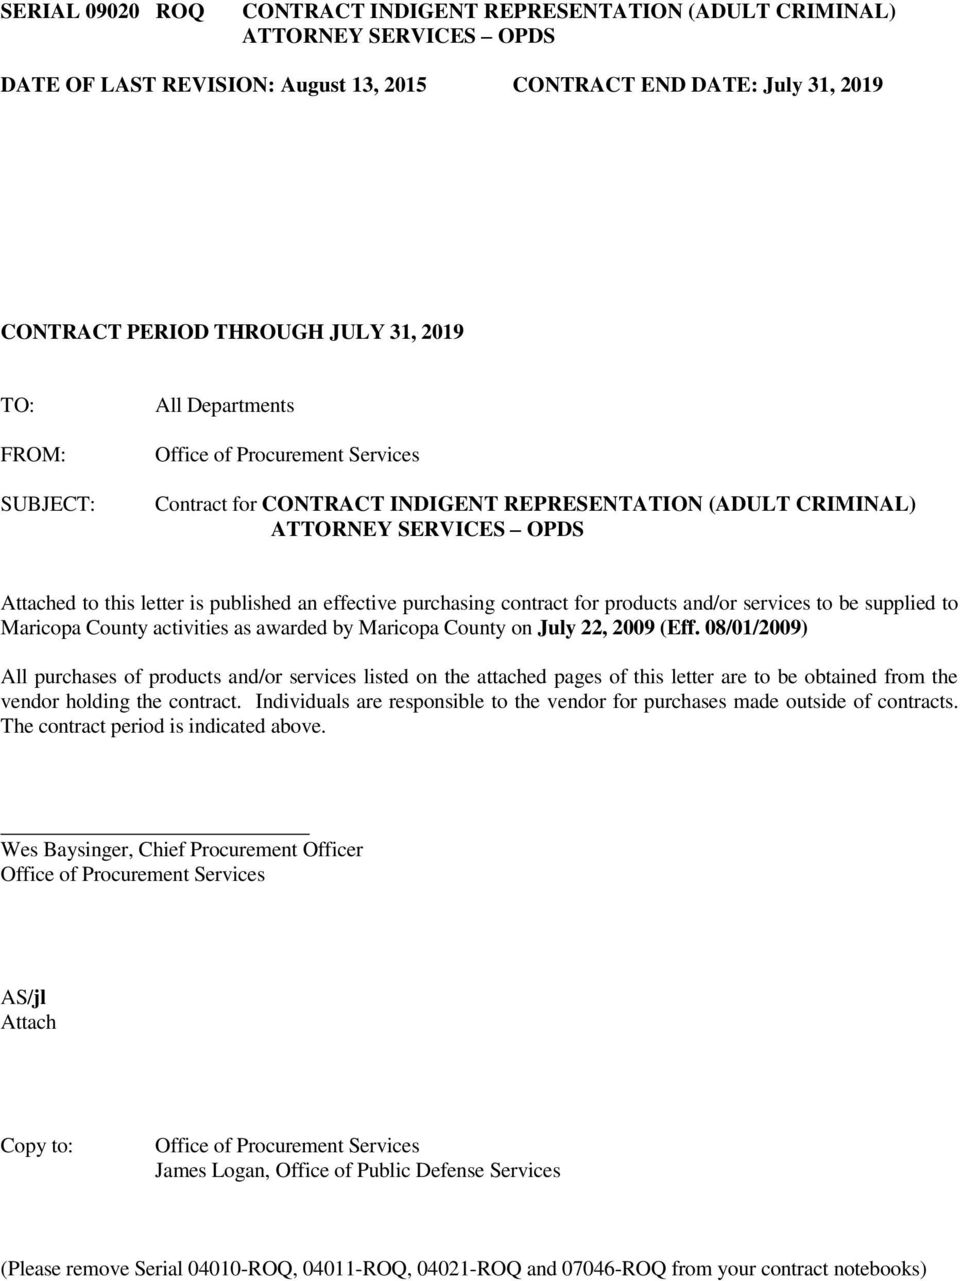 effective purchasing contract for products and/or services to be supplied to Maricopa County activities as awarded by Maricopa County on July 22, 2009 (Eff.